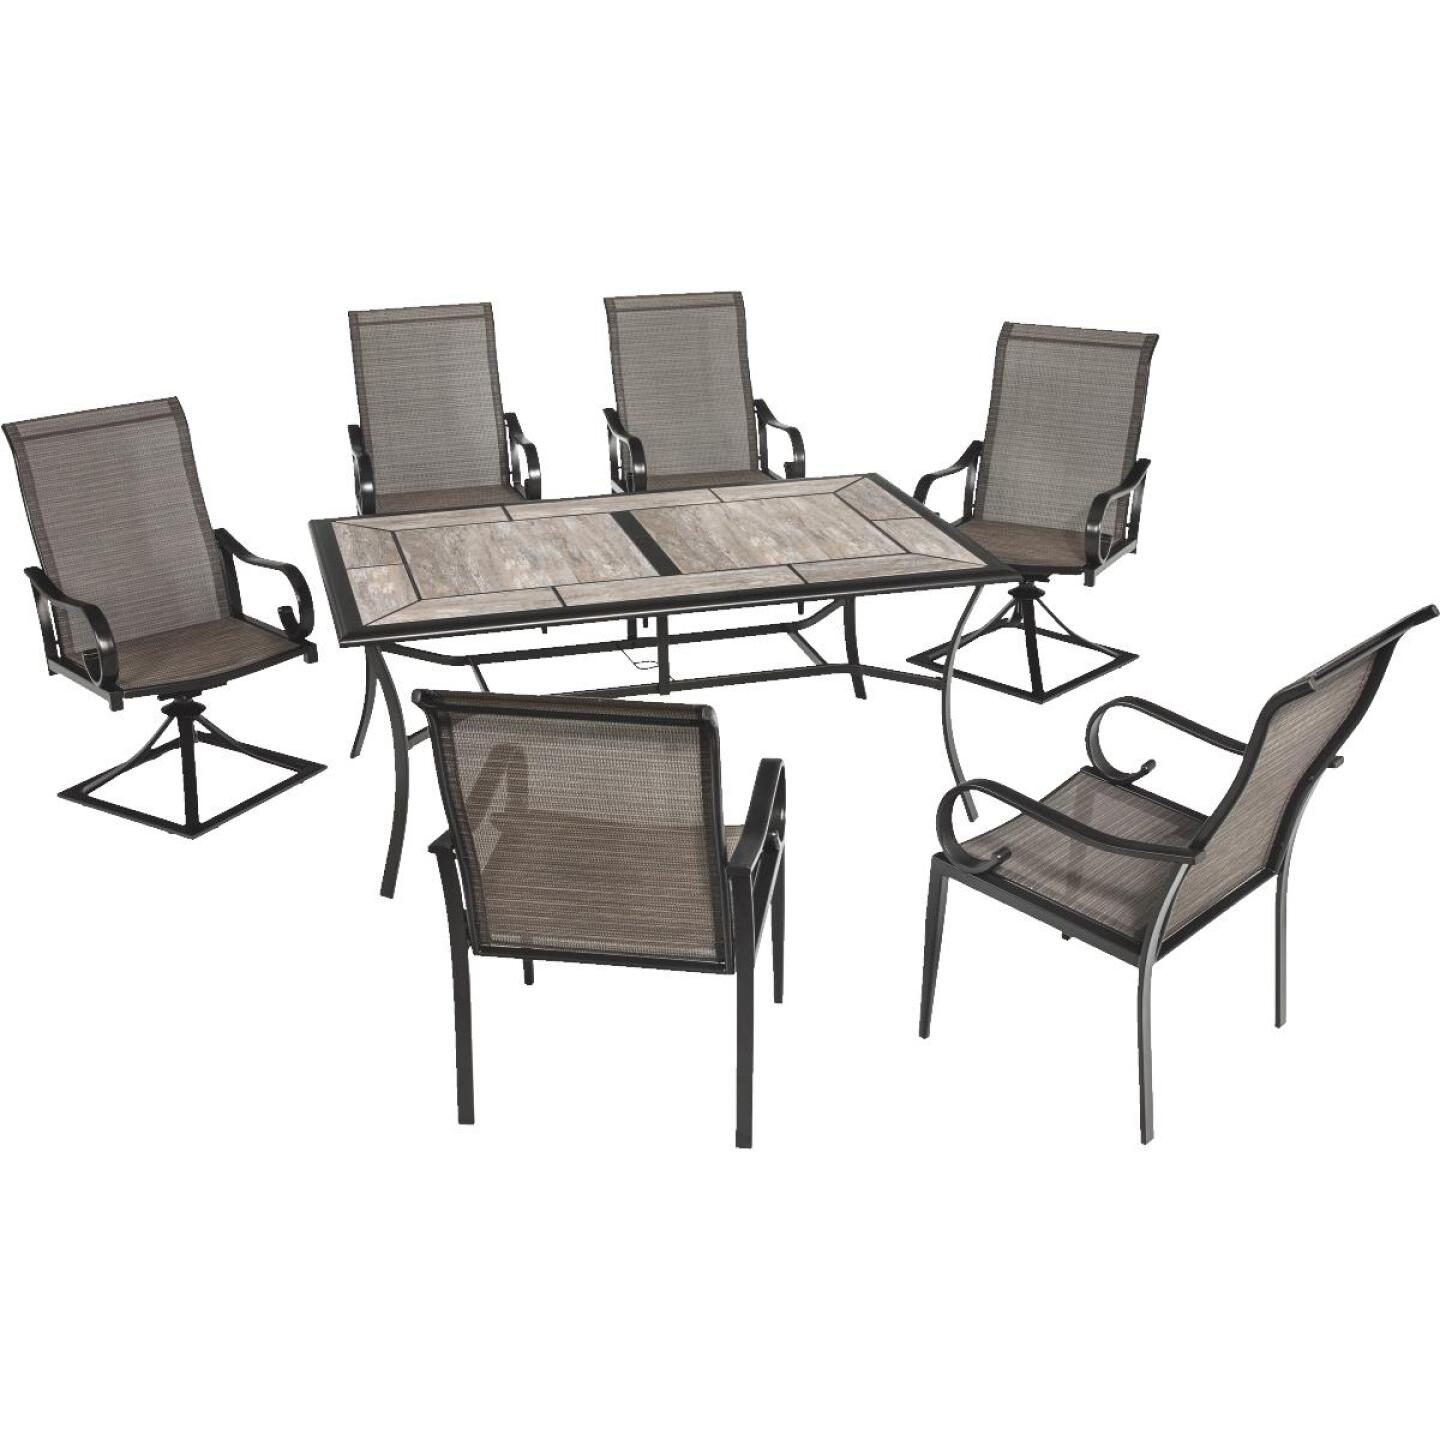 Outdoor Expressions Berkshire 7-Piece Dining Set Image 24